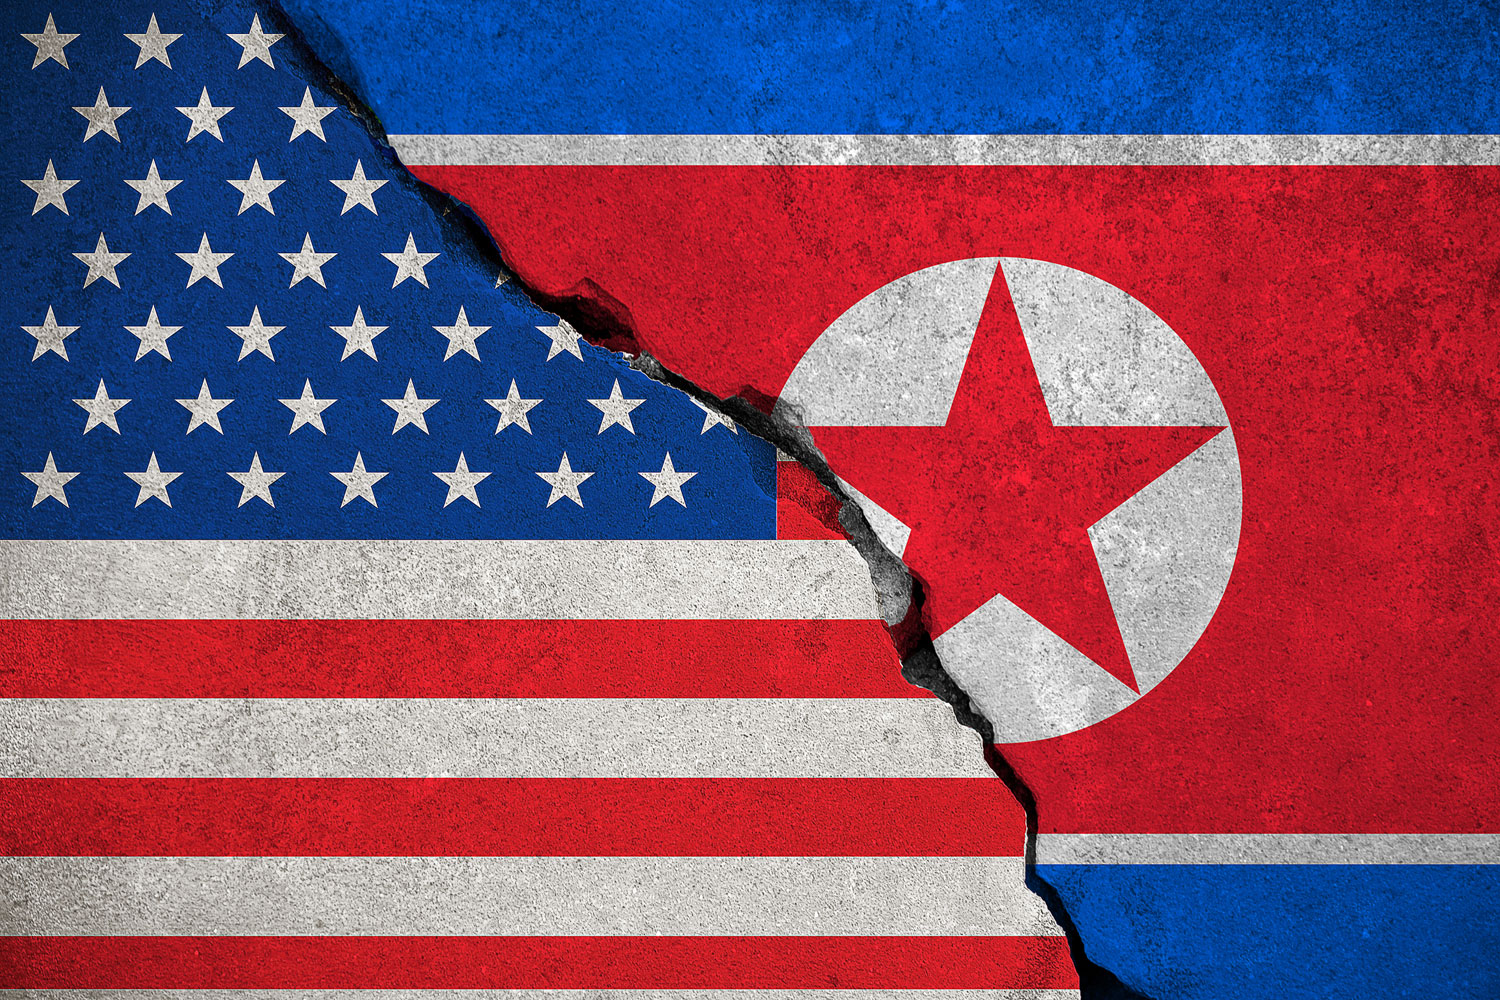 north and south korea conformity Saving the most anticipated for last, the third section concludes with point four: south and north korea confirmed the common goal of realizing, through complete denuclearization, a nuclear-free korean peninsula.